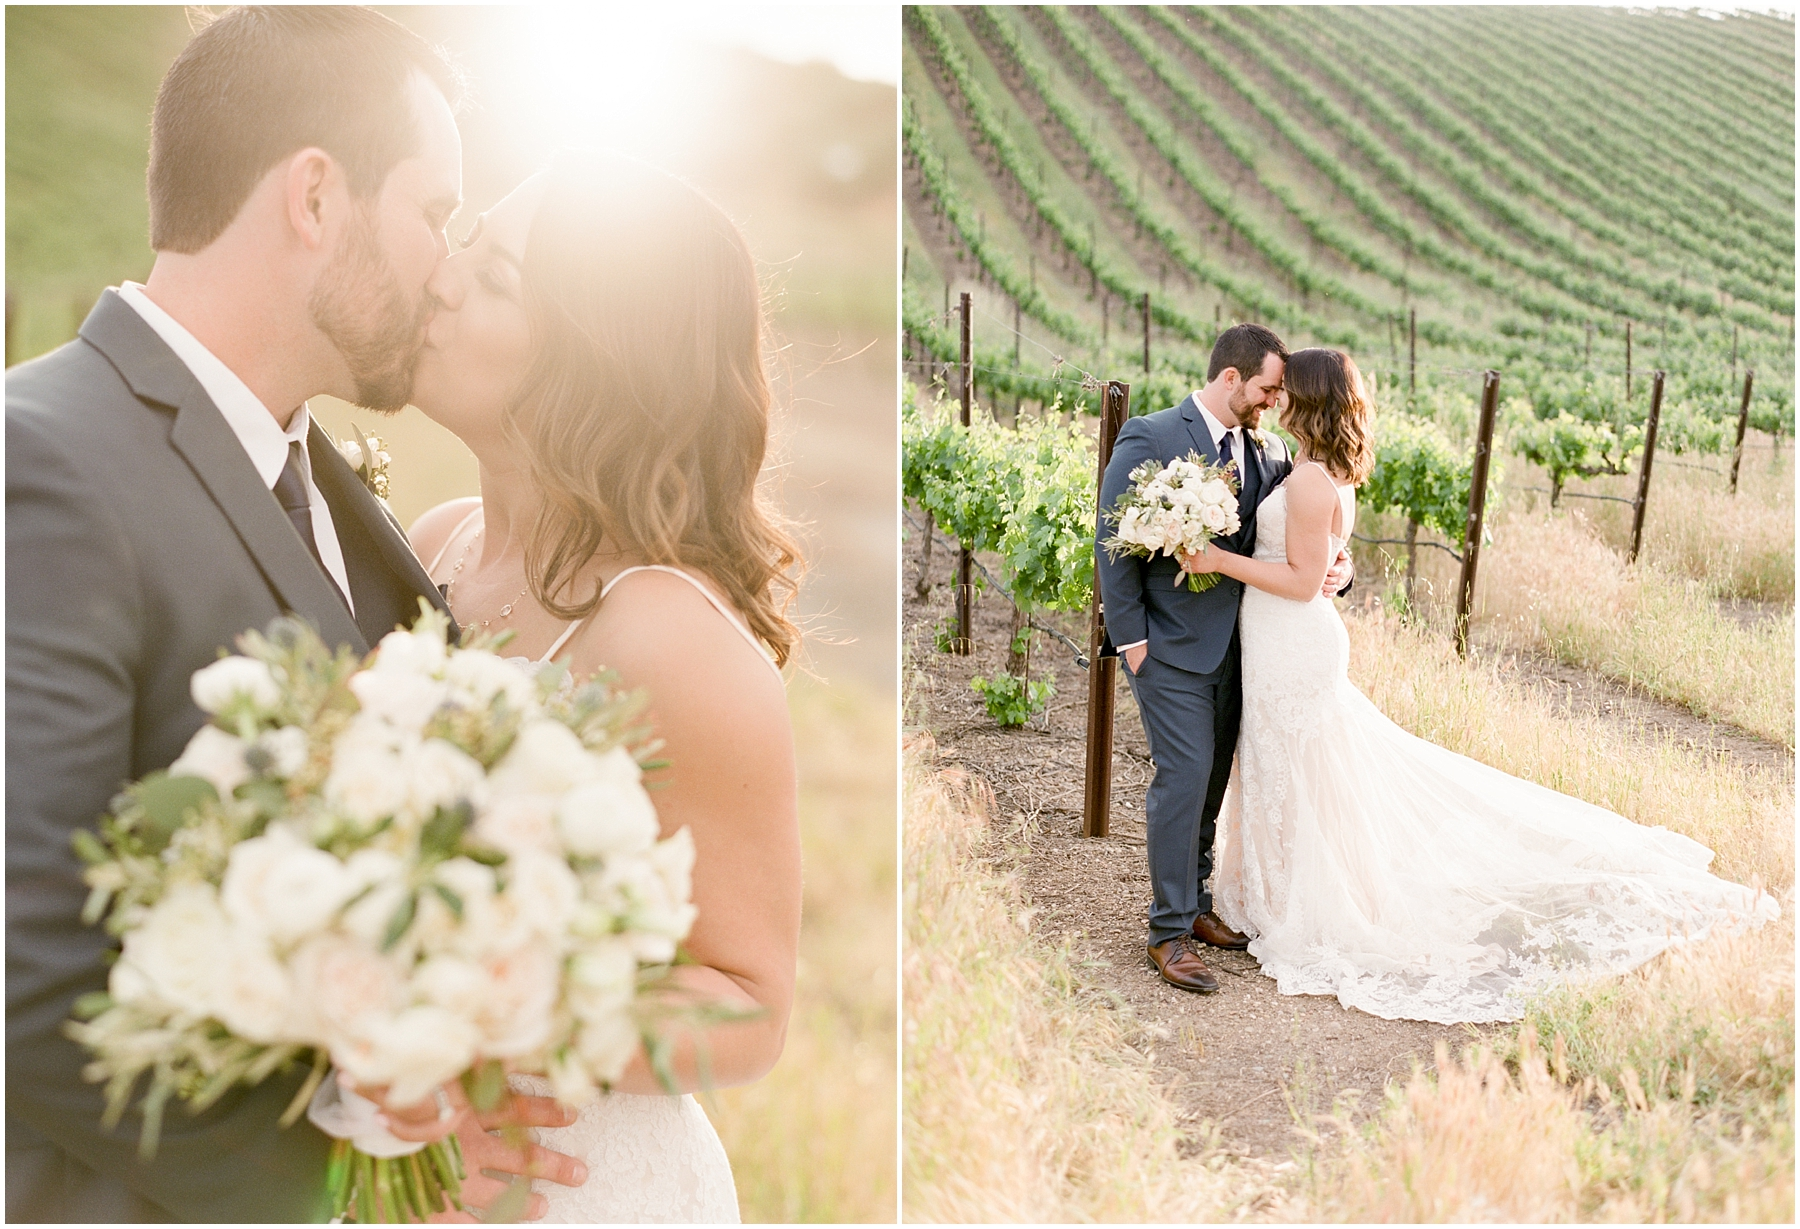 Muriettas-well-livermore-wedding-kristine-herman-photography-148.jpg